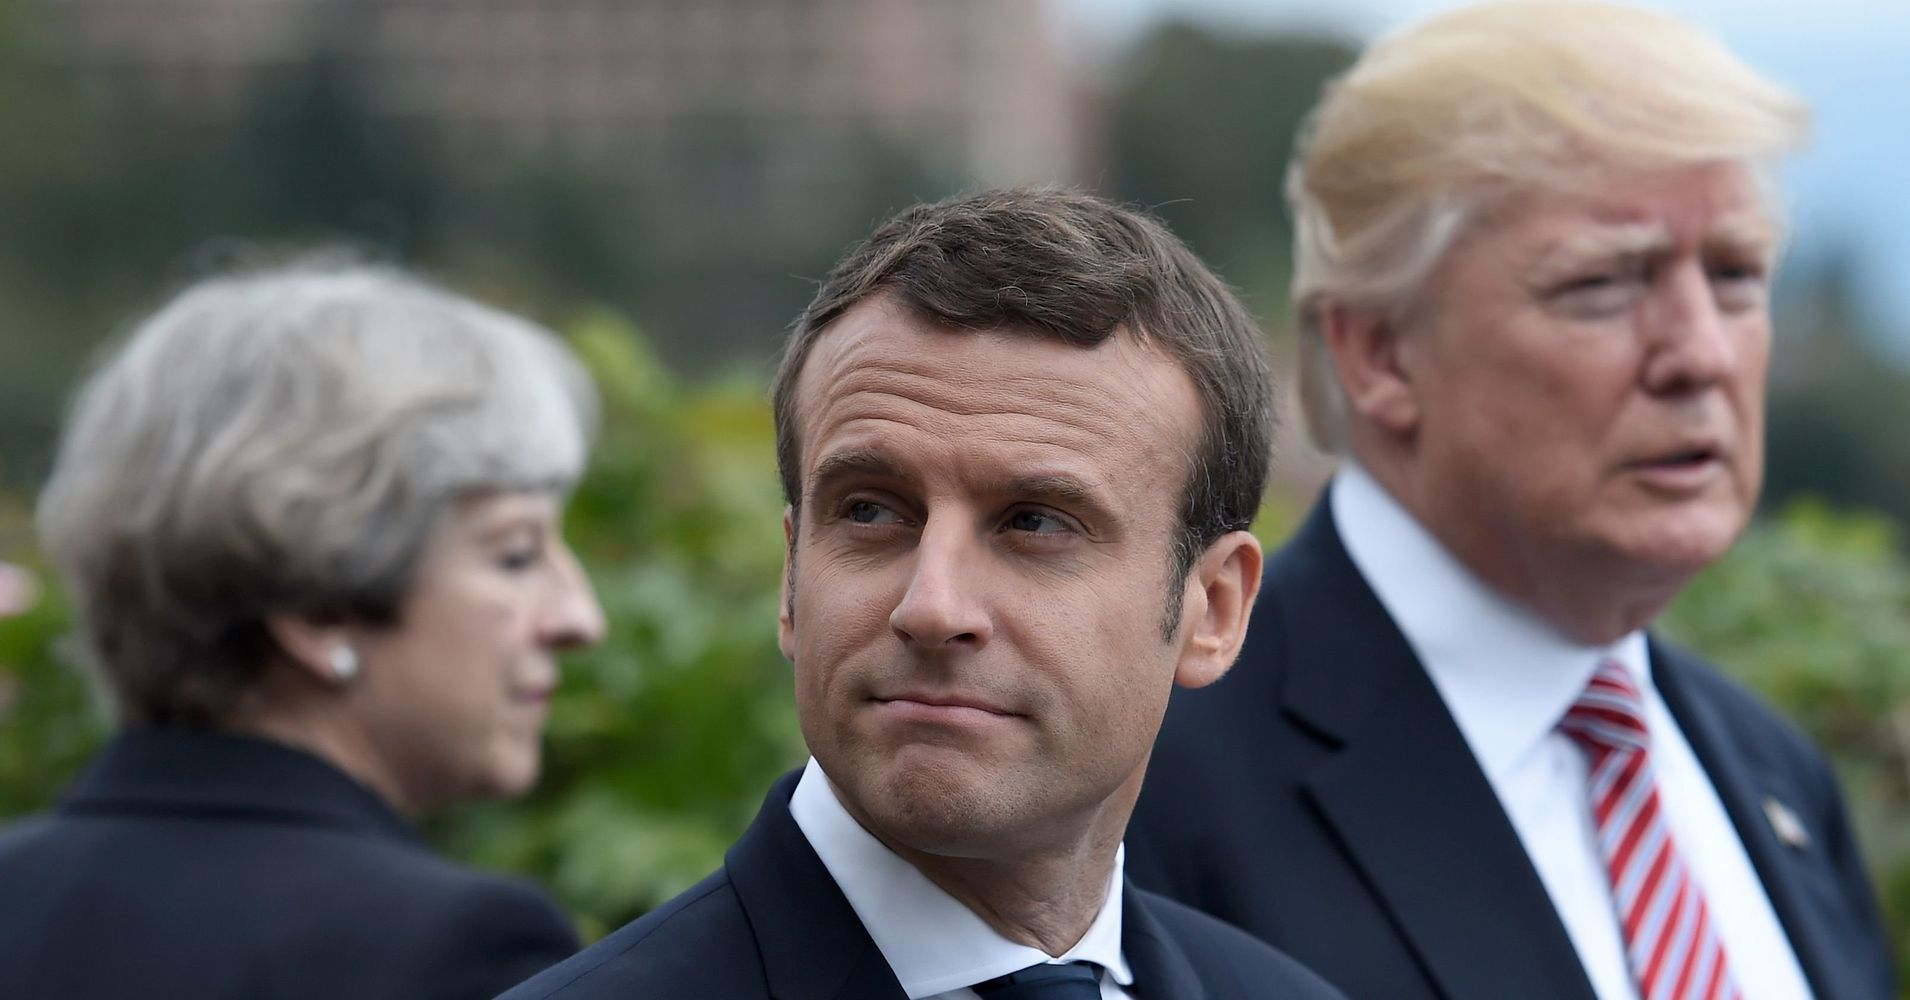 French President To U.S. Scientists: Come Work With Us On Climate Change